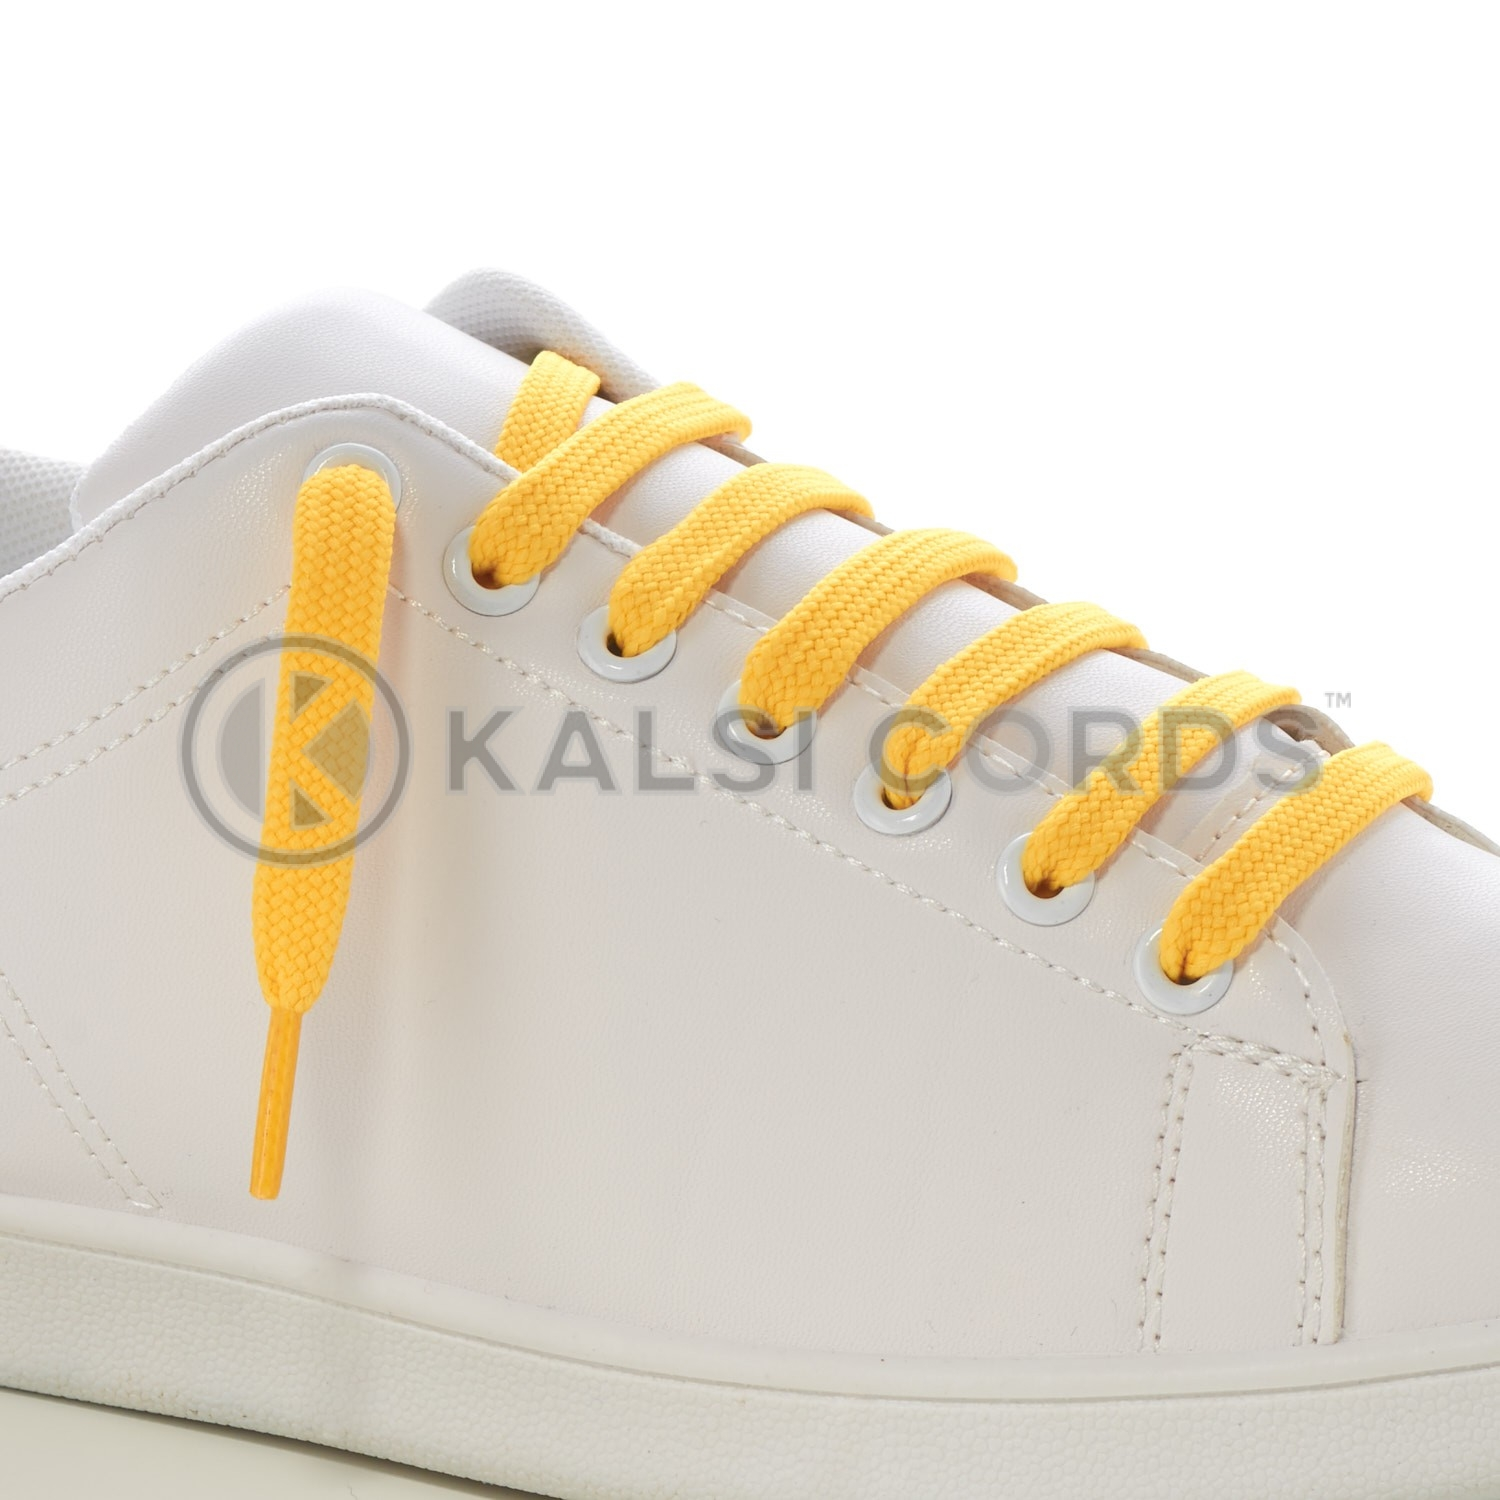 9mm Flat Shoe Laces Tubular Yellow PG720 Sports Trainers Boots Footwear Drawstring Drawcord